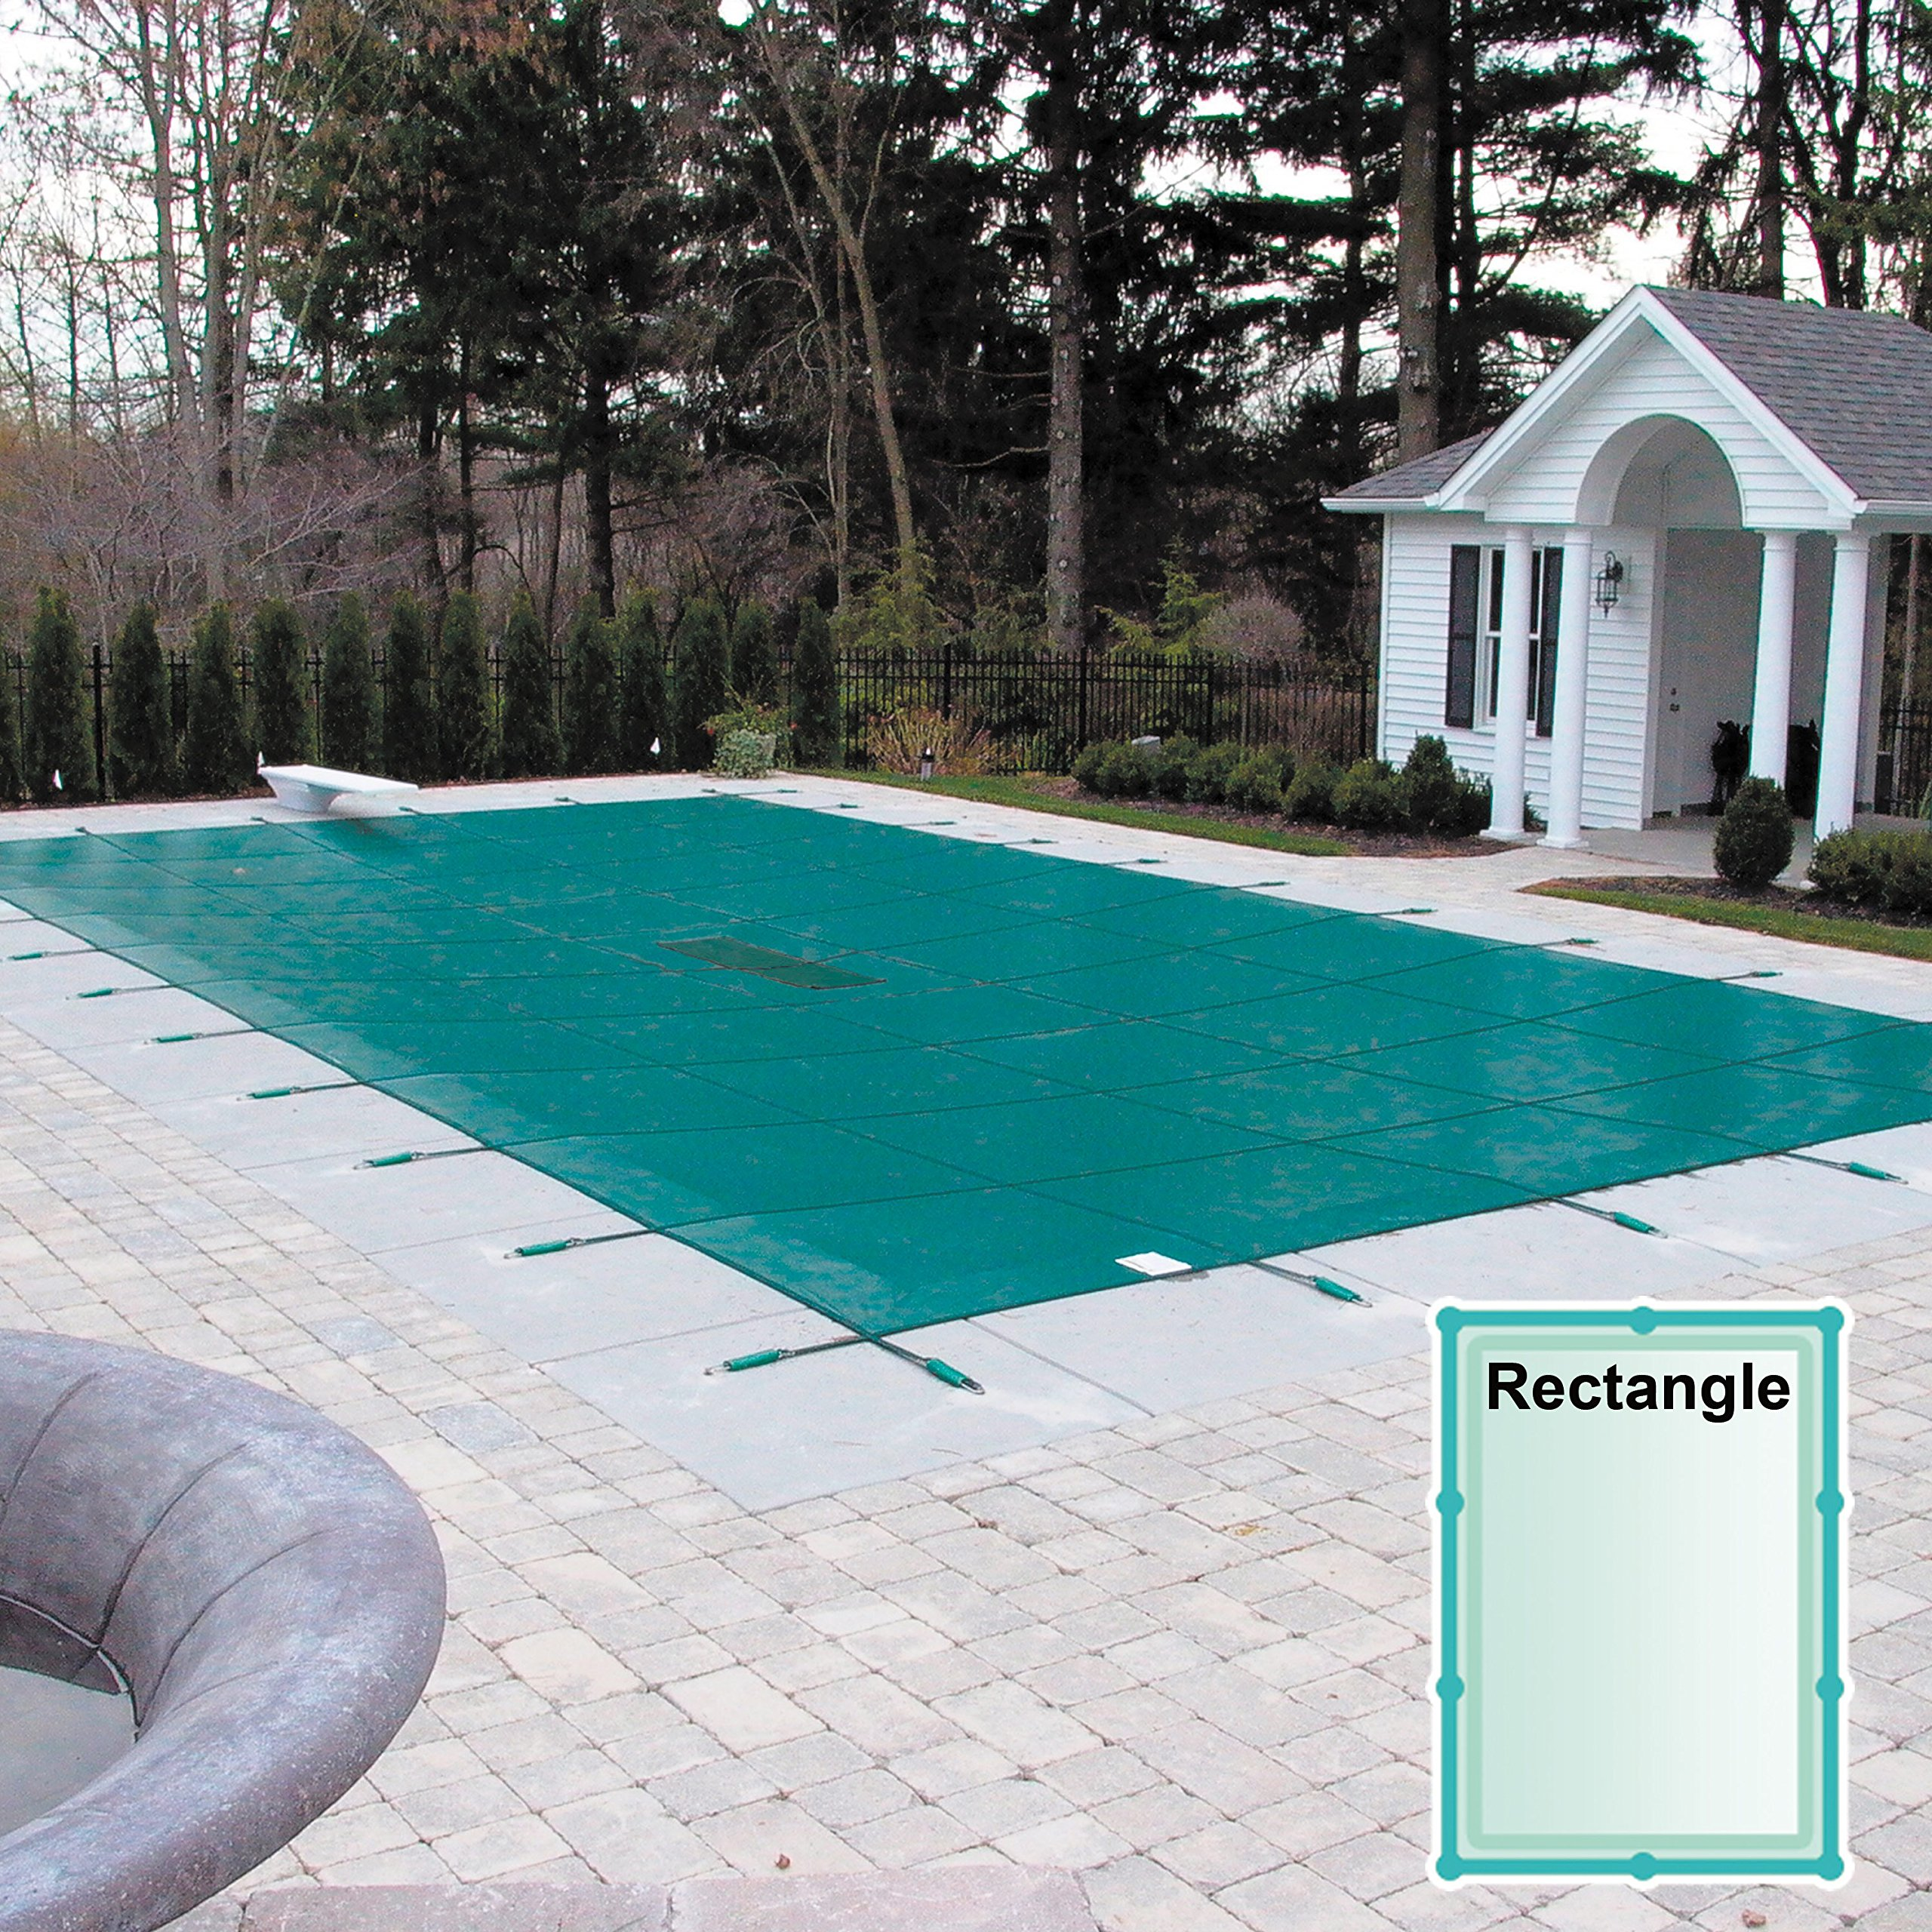 18 x 36 Rectangle Hyper-Light Solid Safety Pool Cover by GLI Pool Products